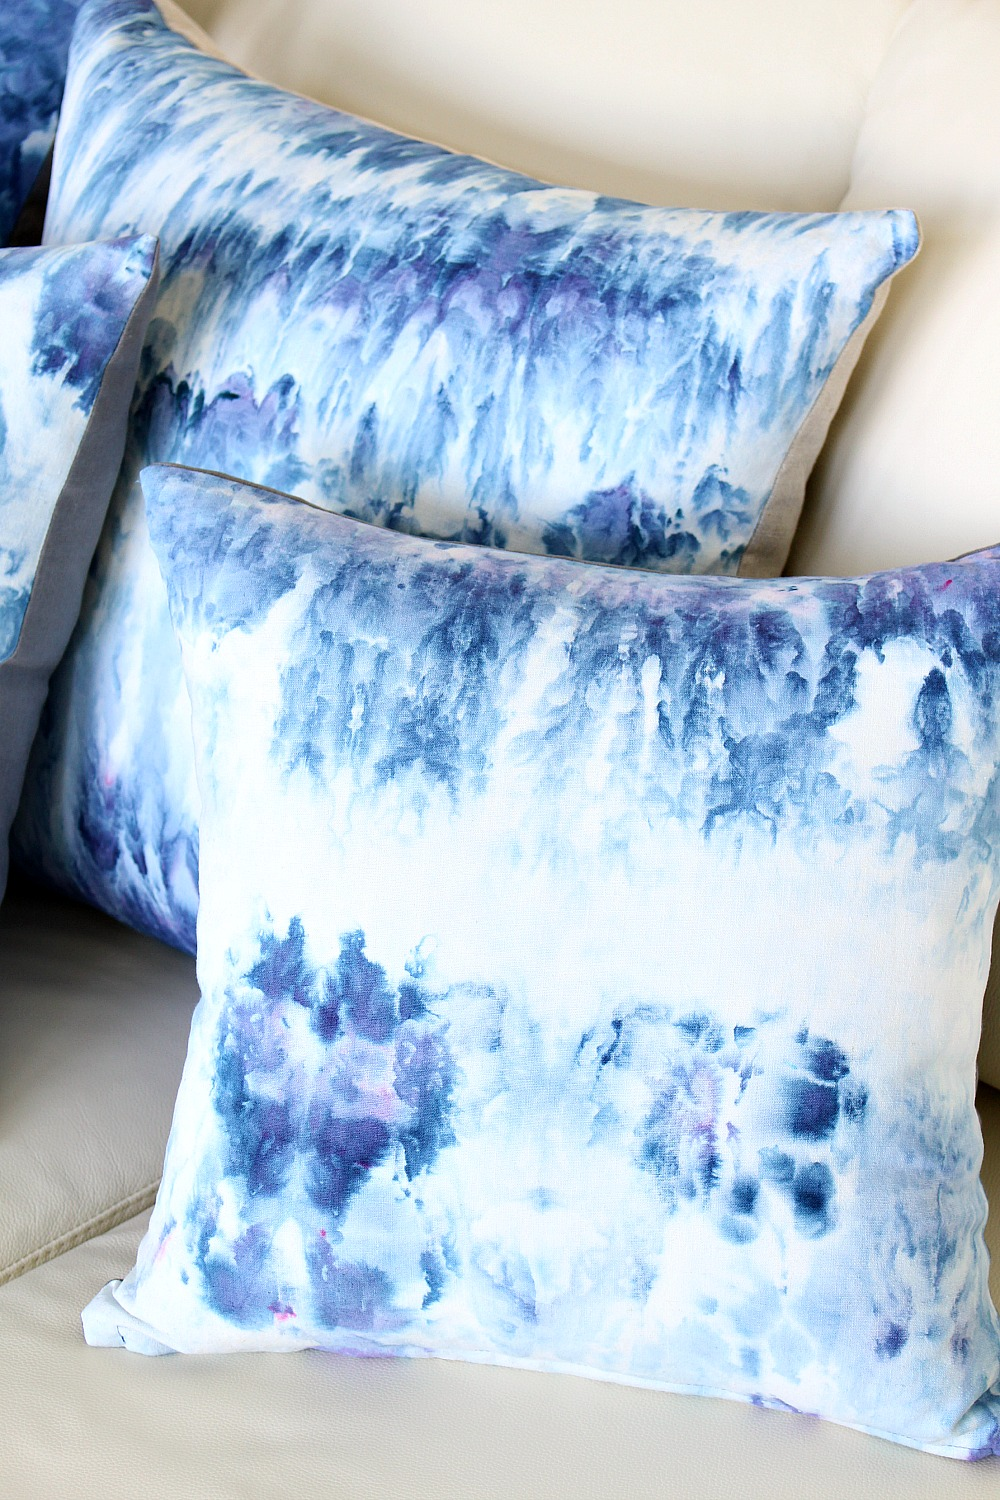 DIY Ice Dye Pillows (Blue Pillows for the Sailboat) | Dans ...